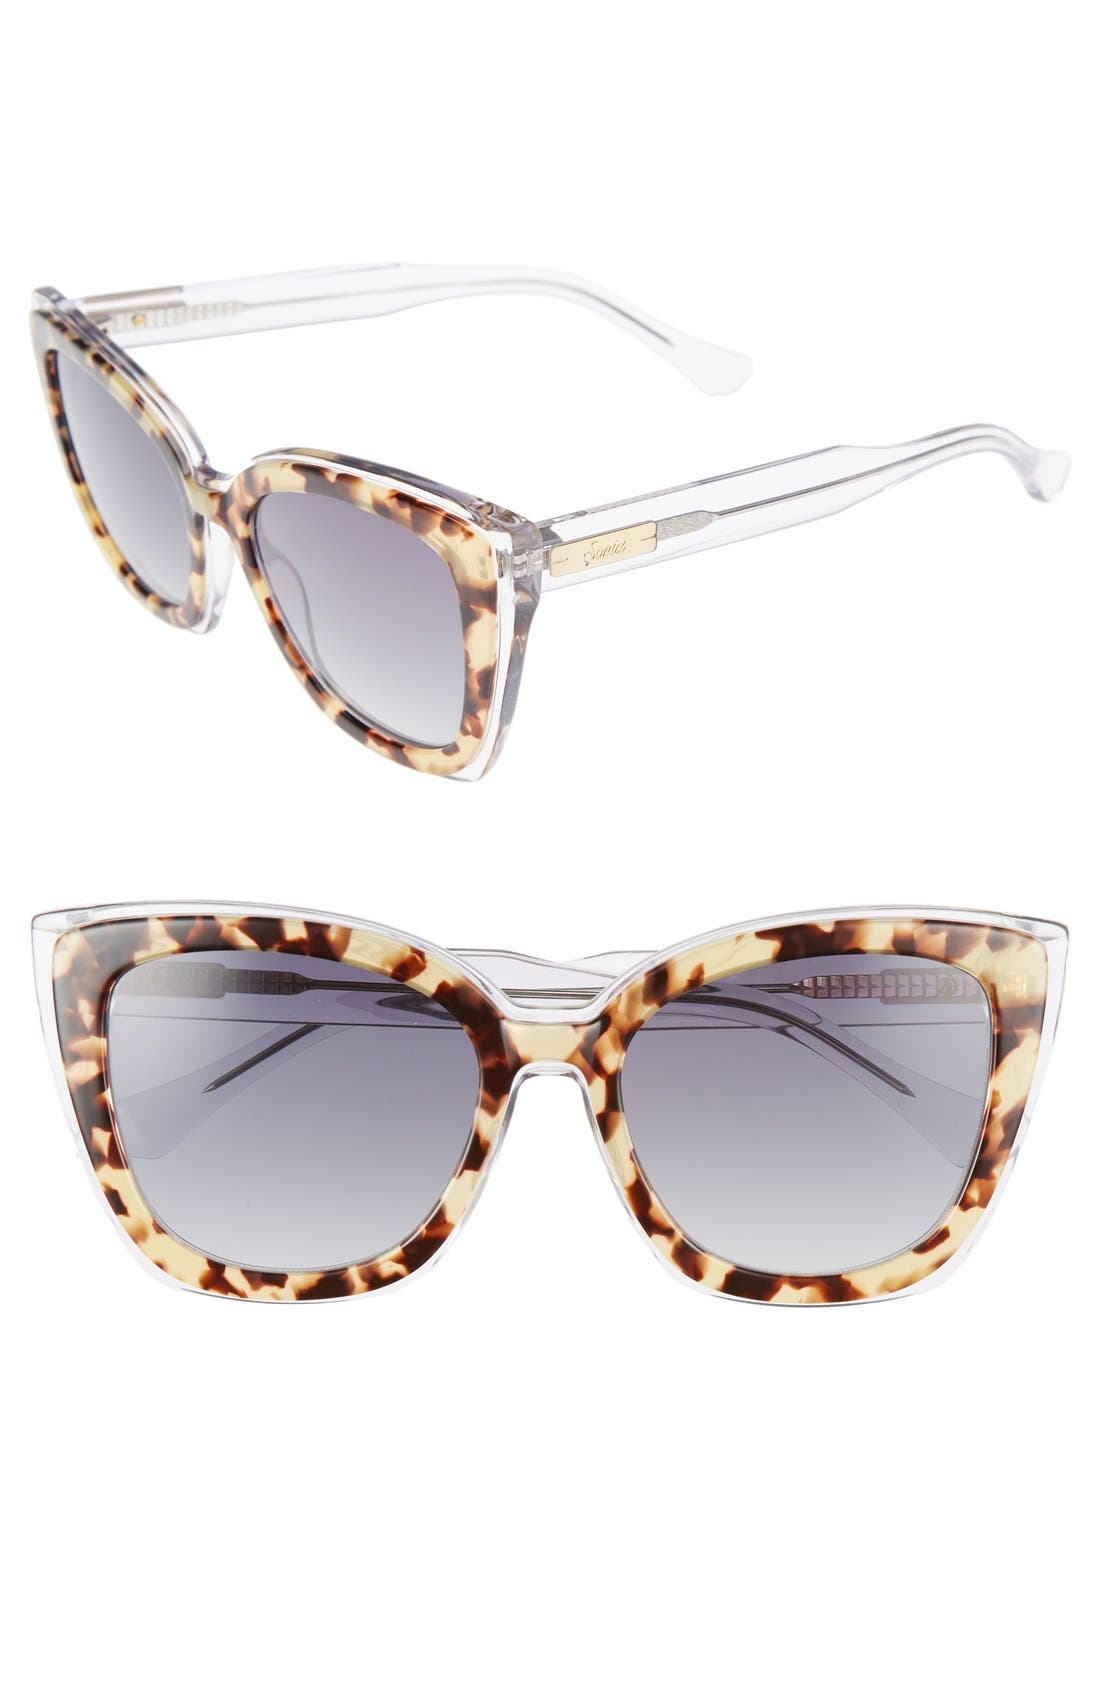 Main Image - Sonix Lafayette 53mm Gradient Cat Eye Sunglasses